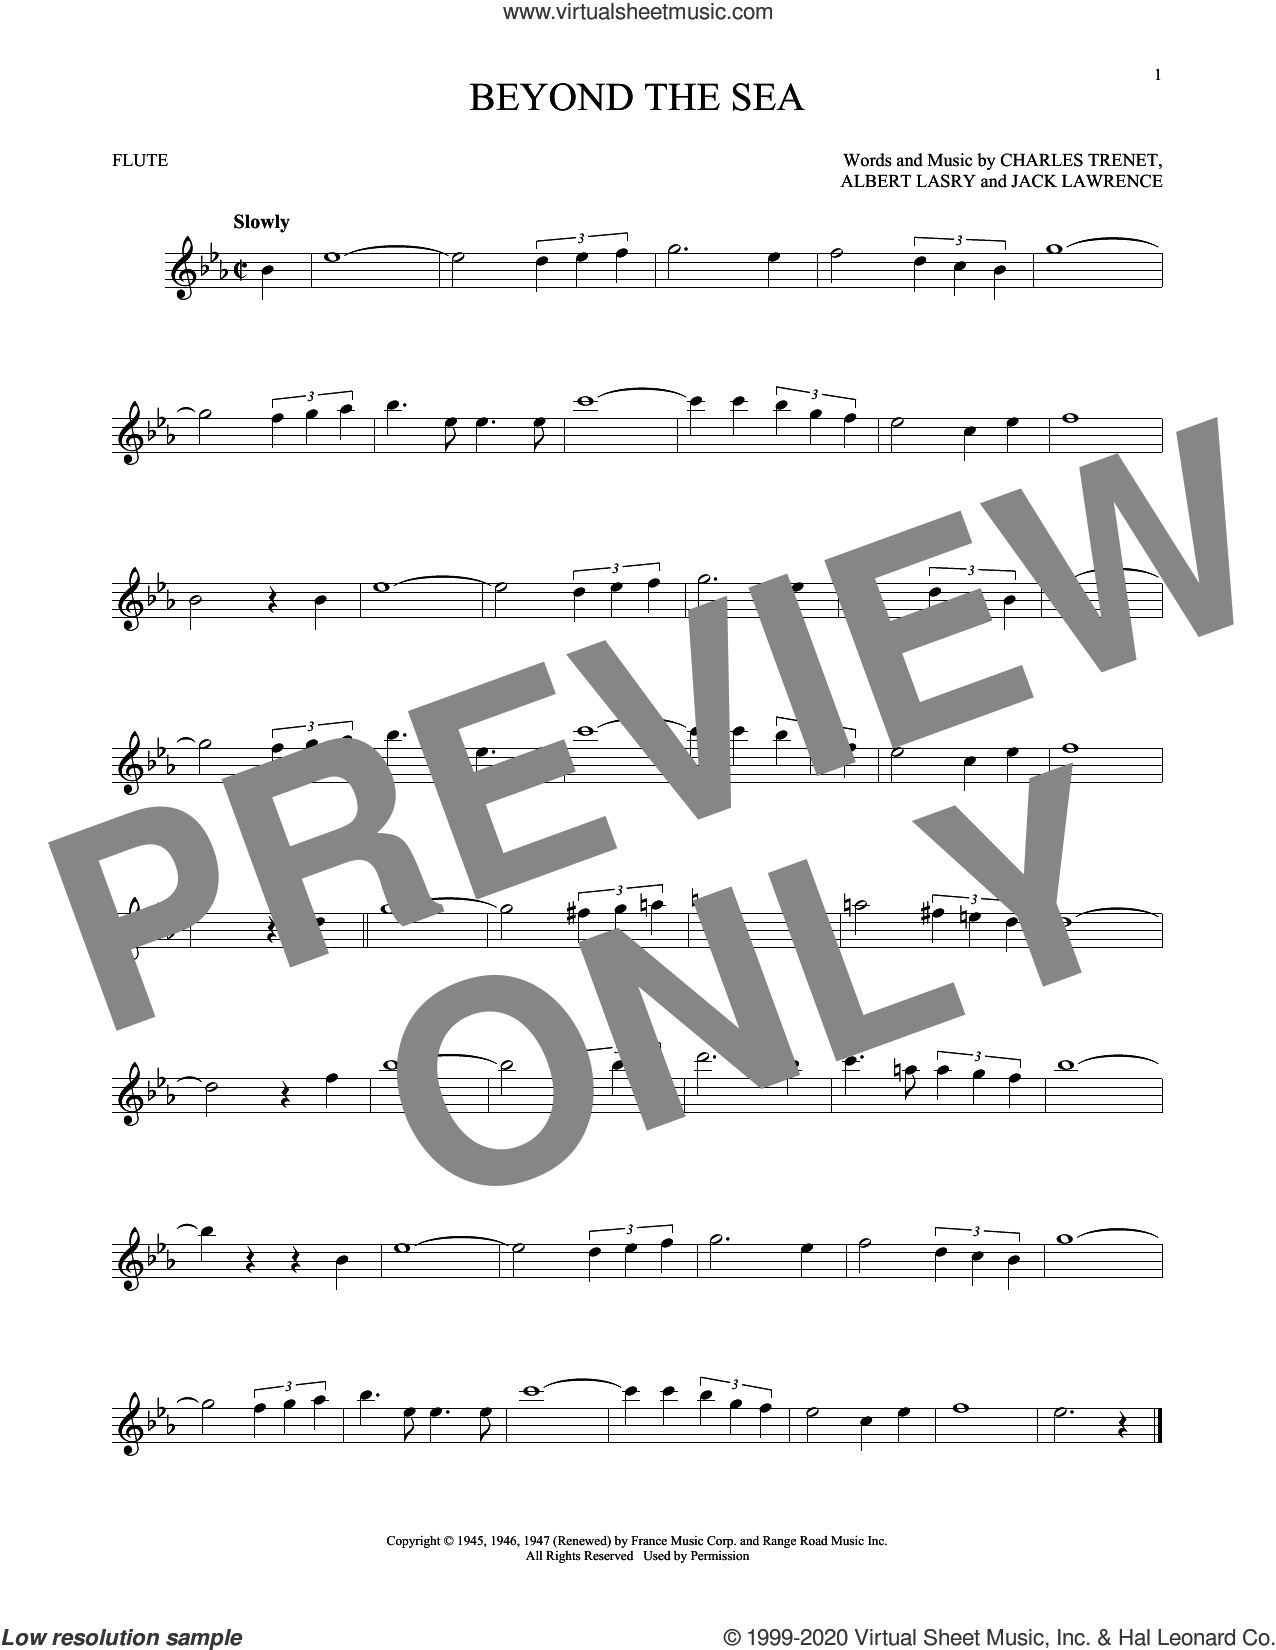 Beyond The Sea sheet music for flute solo by Bobby Darin, Roger Williams, Albert Lasry, Charles Trenet and Jack Lawrence, intermediate skill level